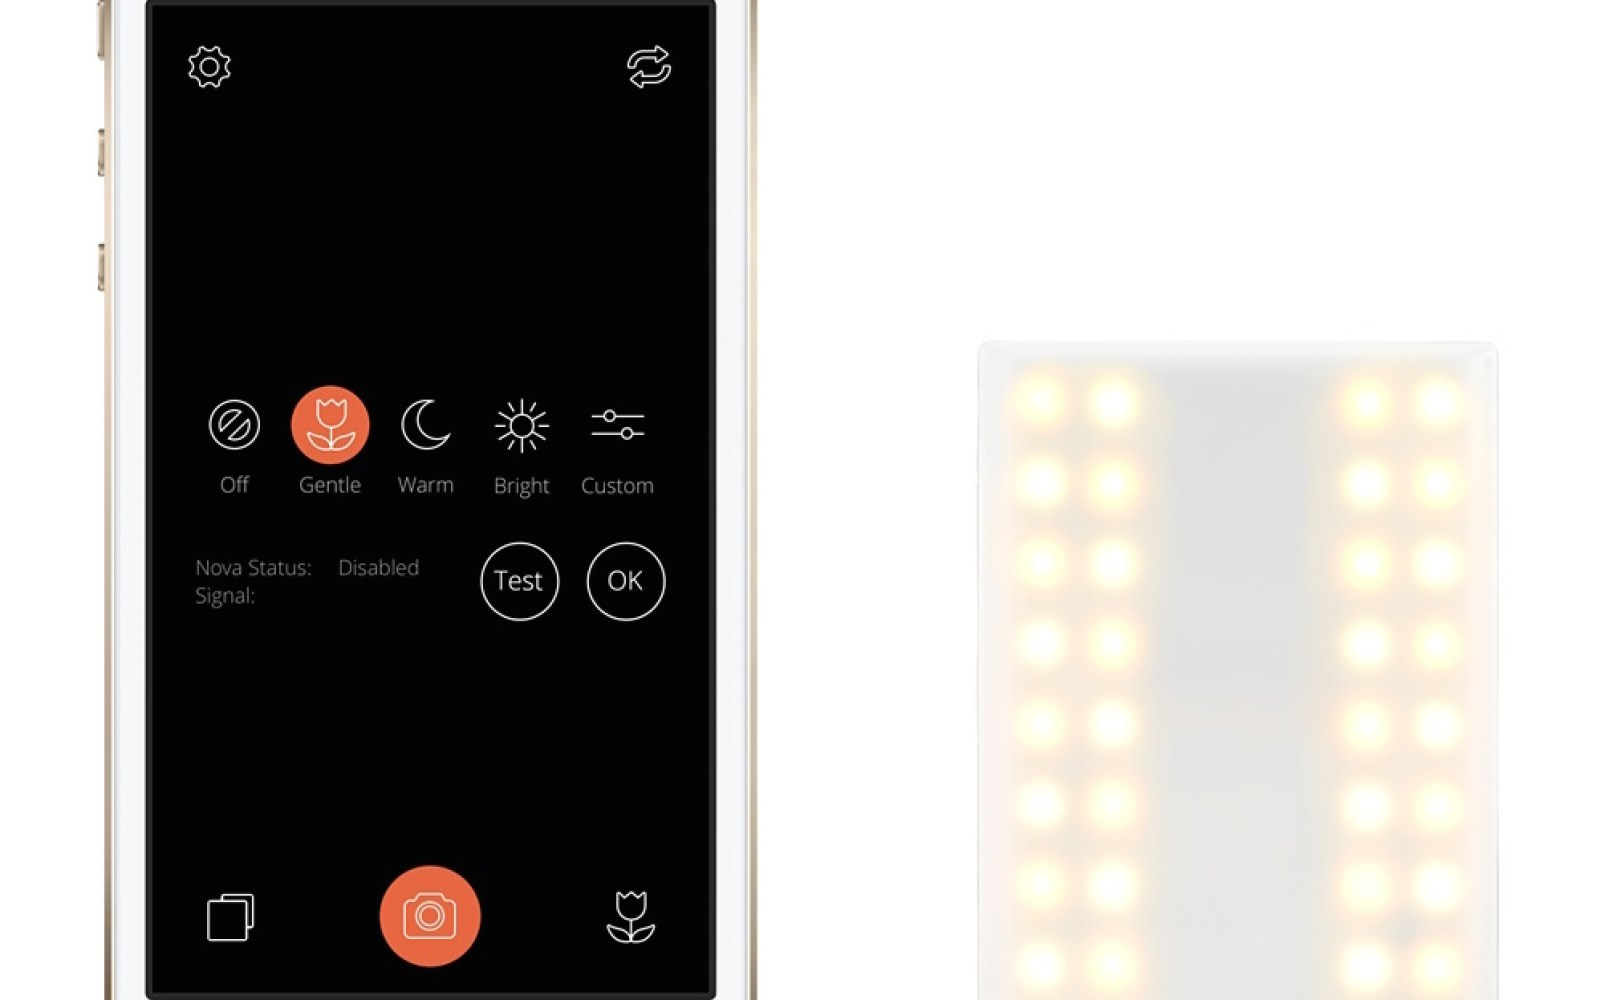 Nova wireless Bluetooth flash for iPhone now available through the Apple Store